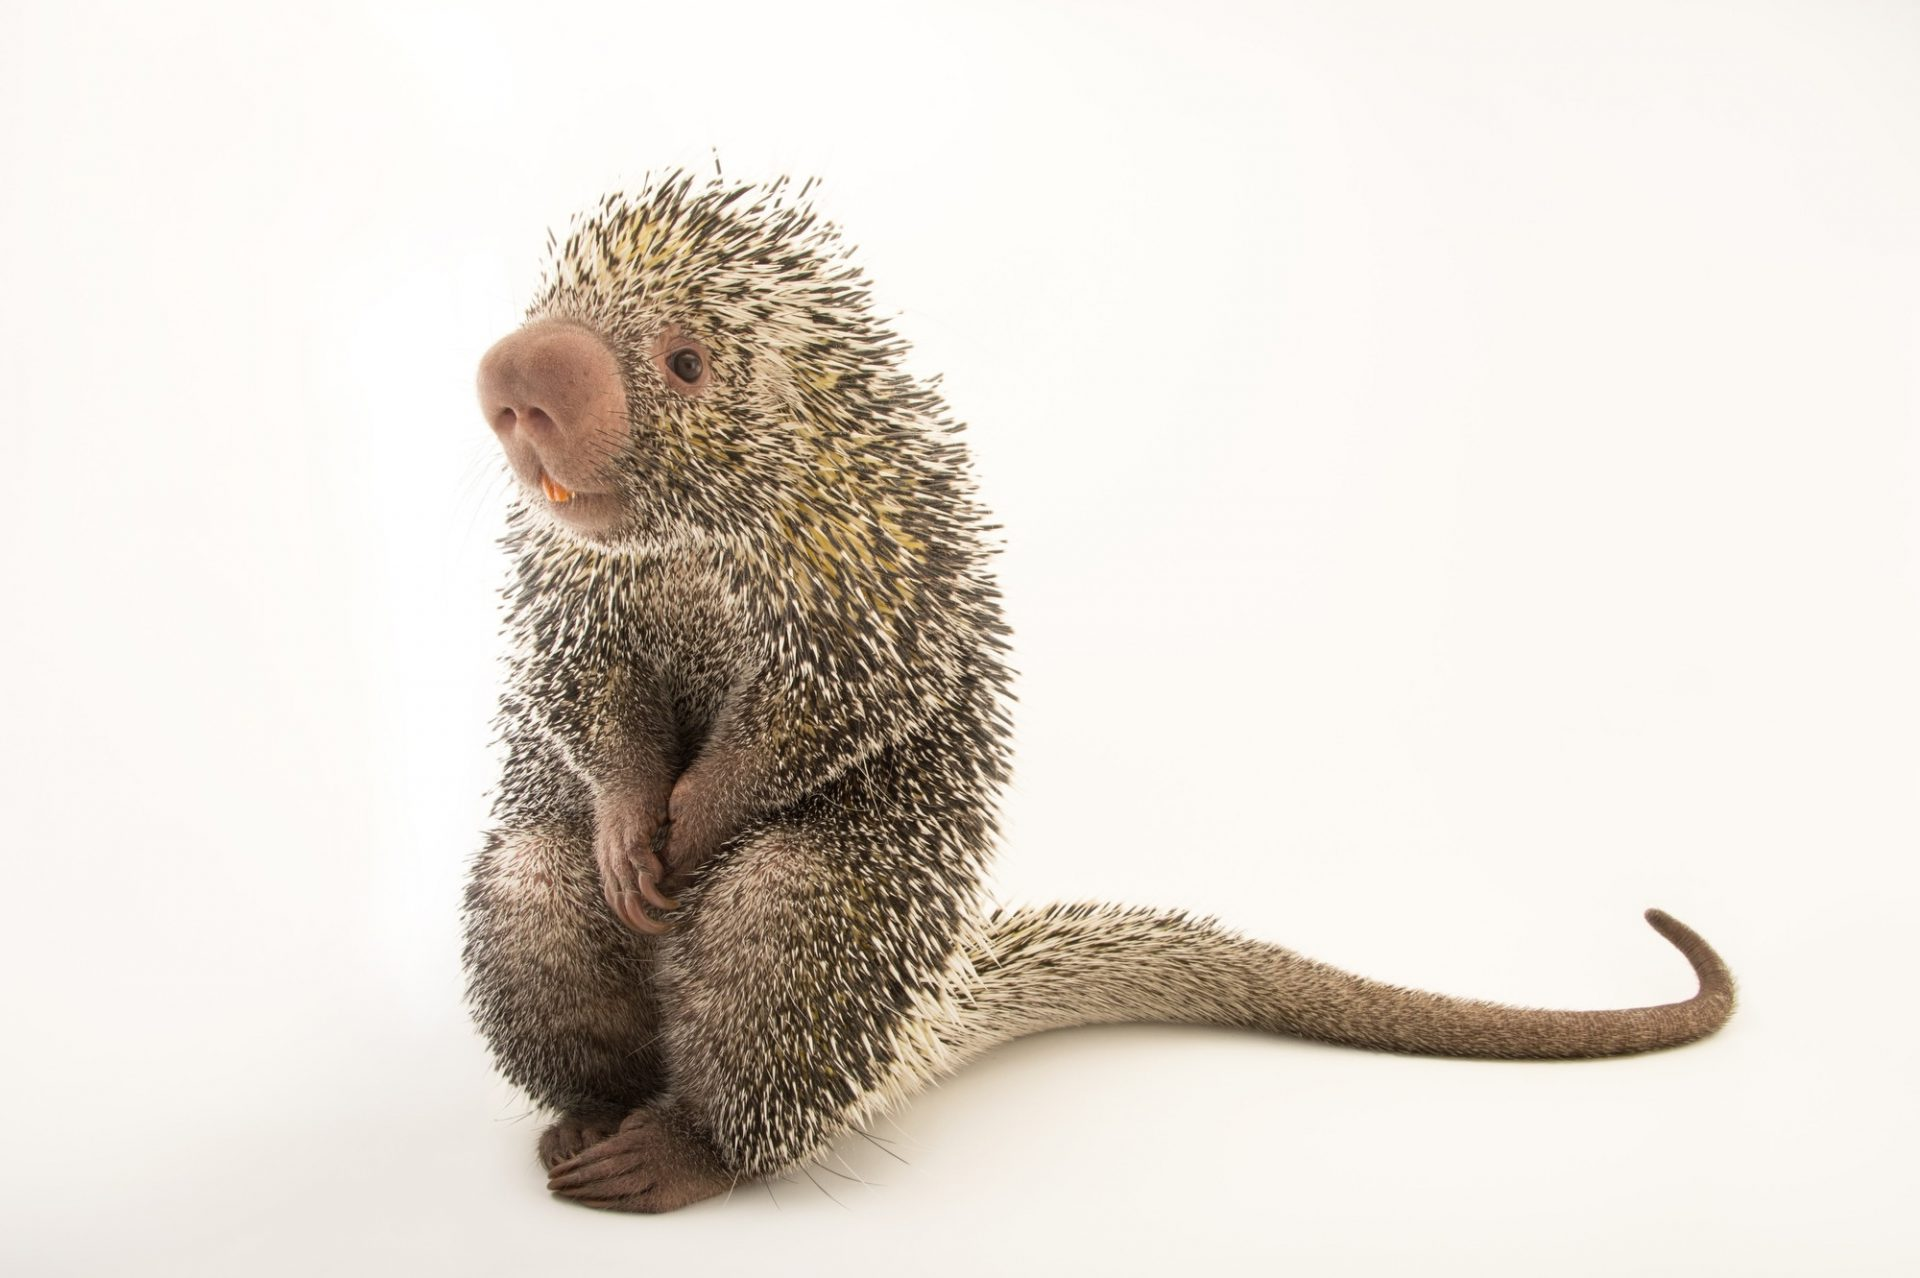 Picture of a Brazilian porcupine (Coendou prehensilis) at the Saint Louis Zoo.